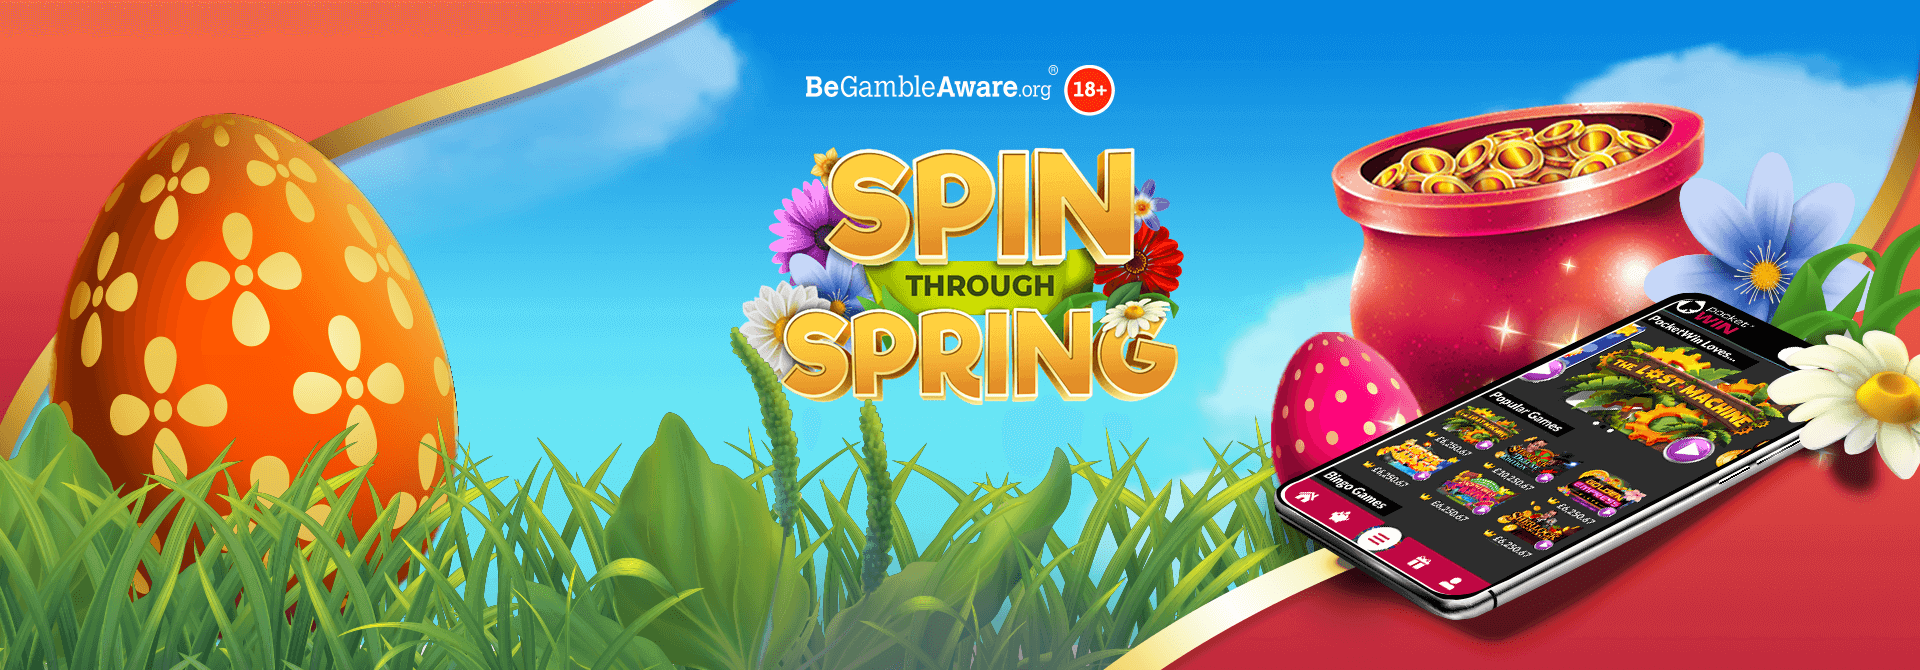 Find out who sprung a win on PocketWin's Spin Through Spring campaign